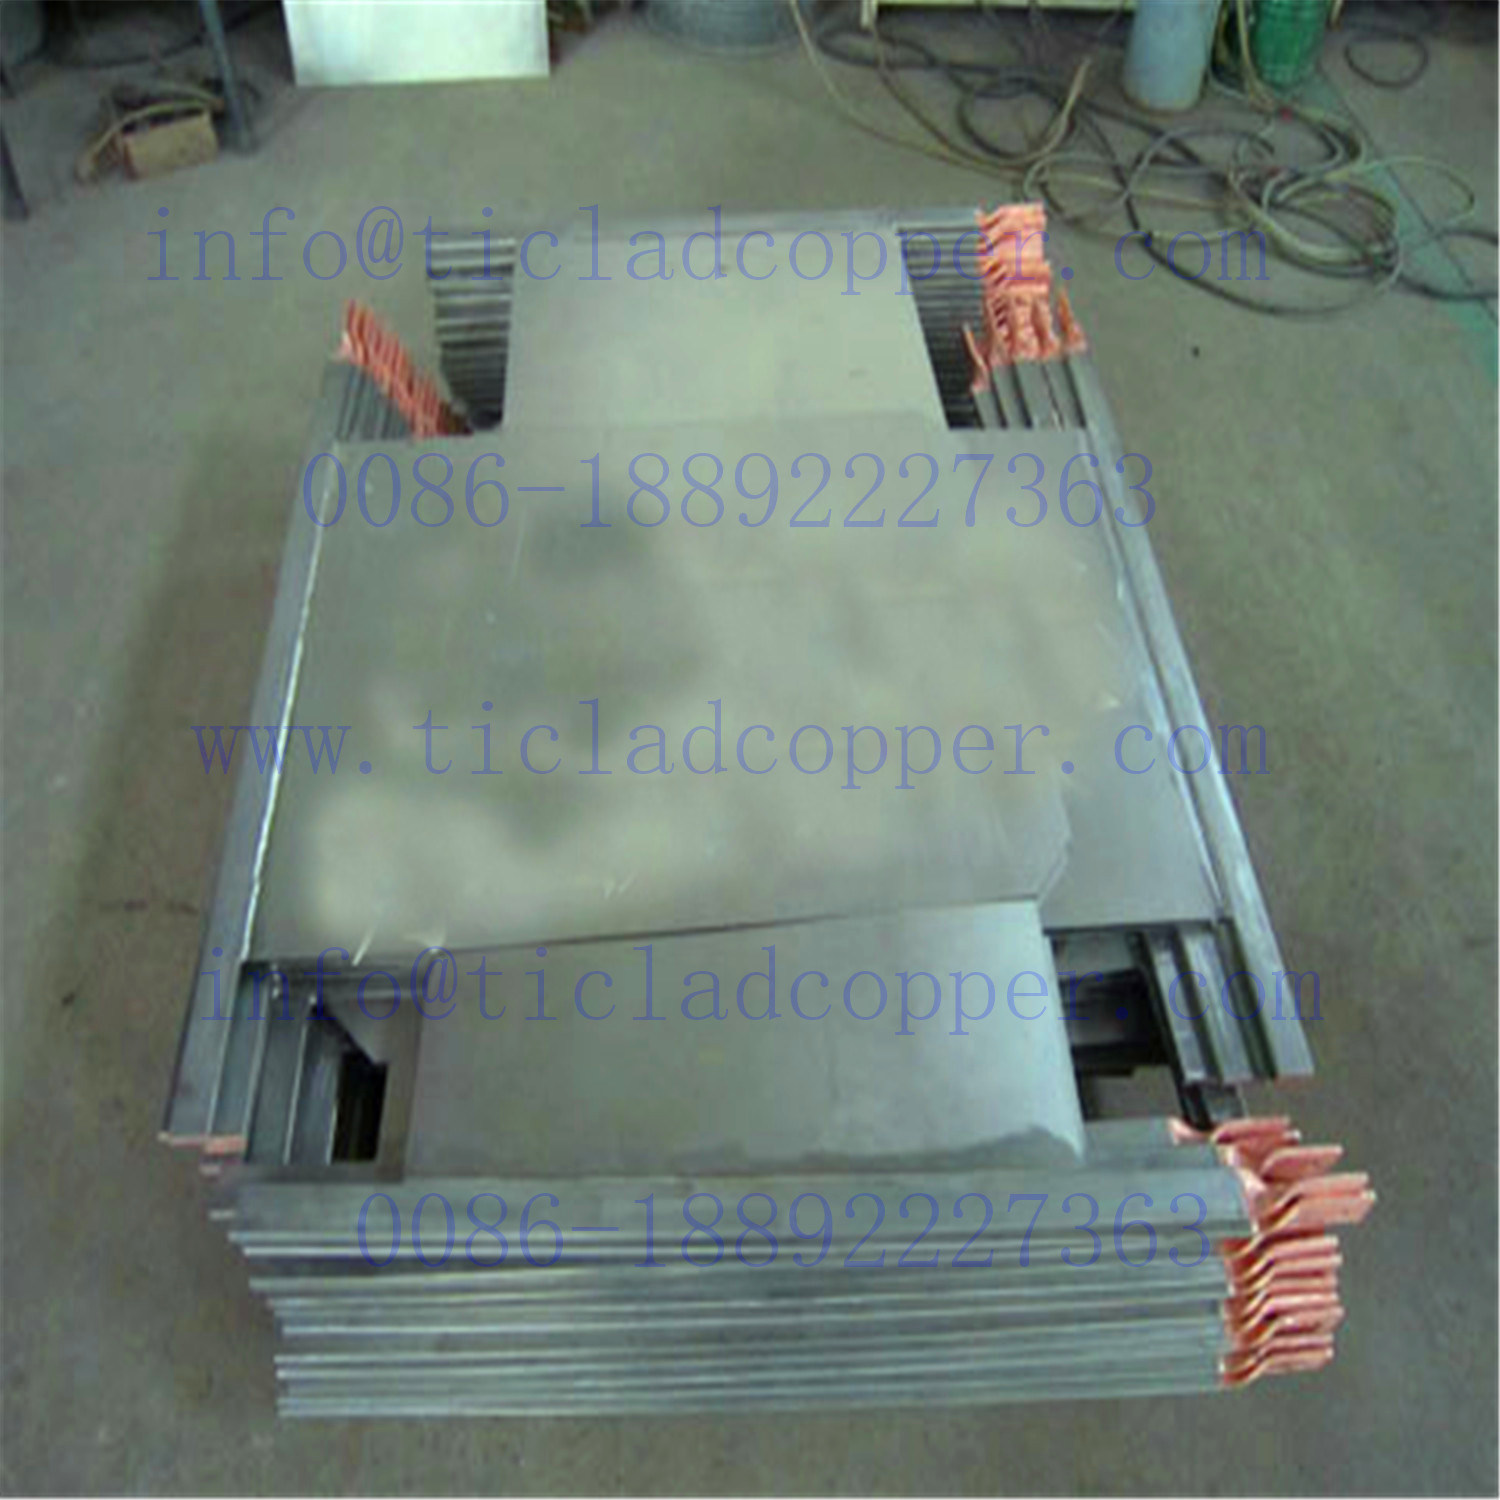 Stainless Steel Cathode Plate for Copper Electrowinning/ Copper Electrorefining